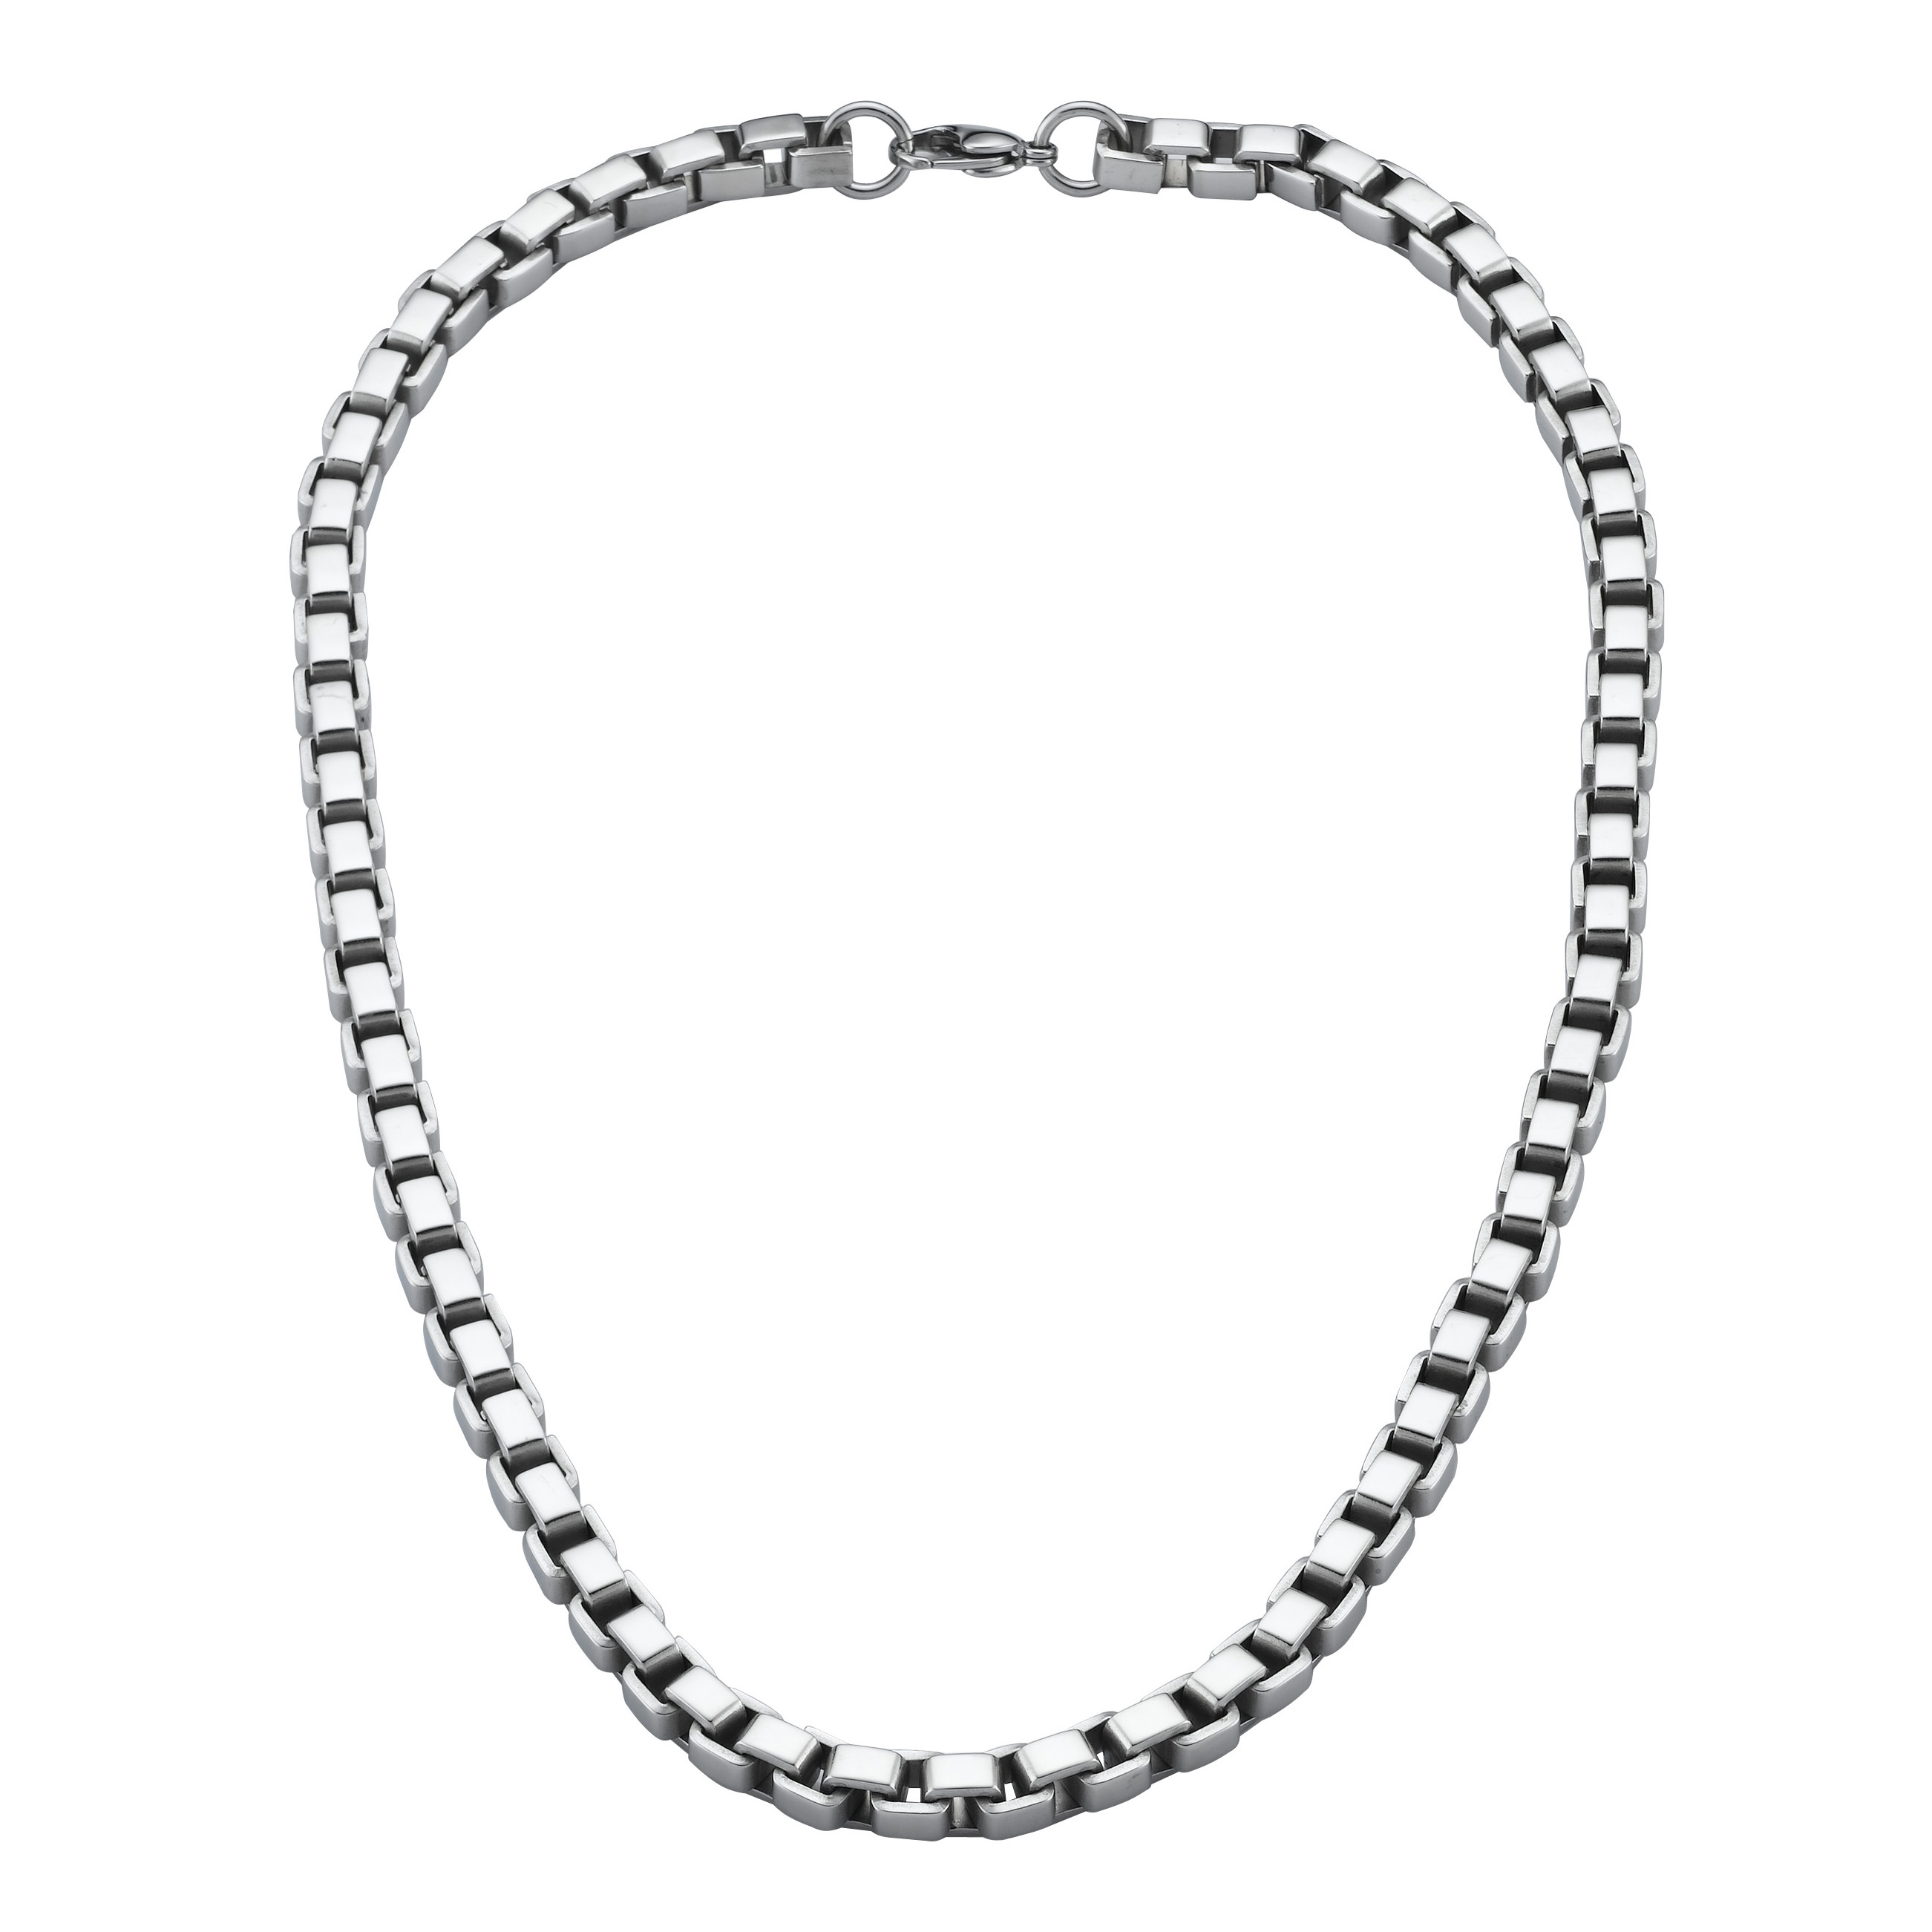 WCN0006-Polished Tungsten Carbide Necklaces